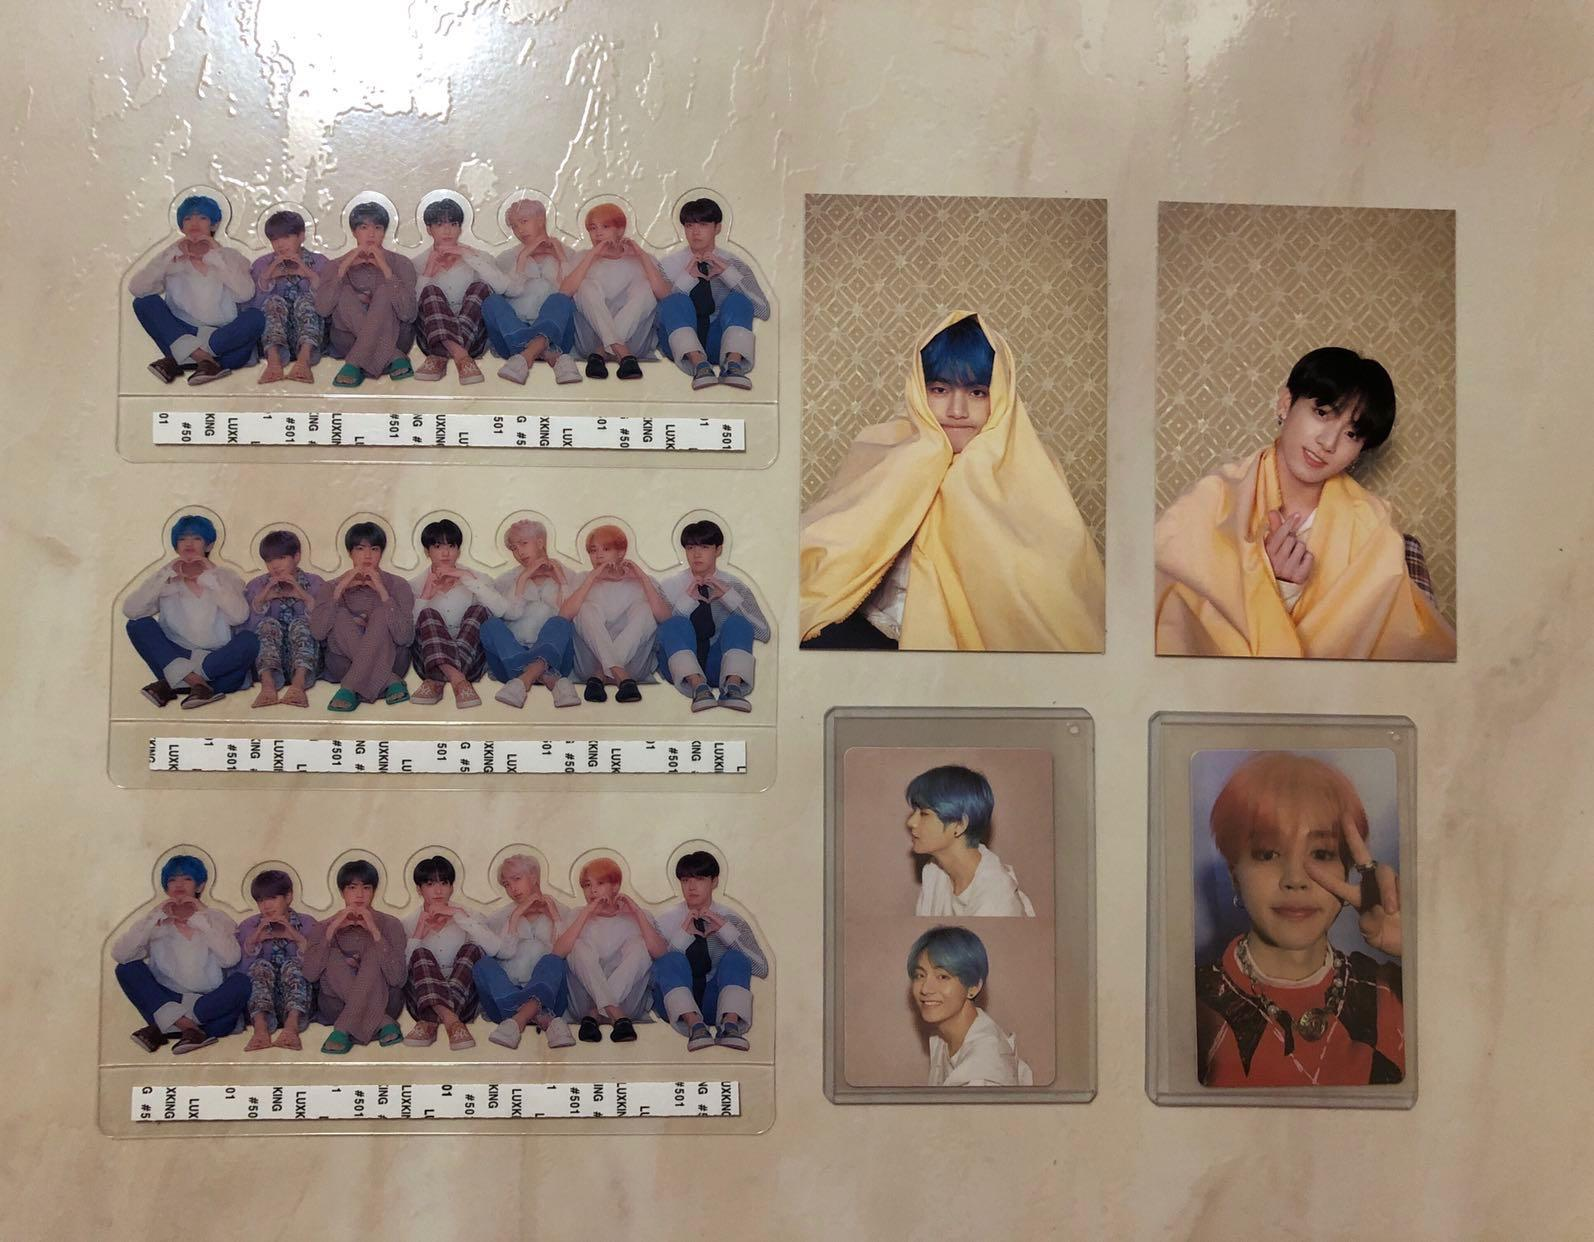 [WTS] Bts MOTS Persona Photocard / Postcard / Clear Photo Picket